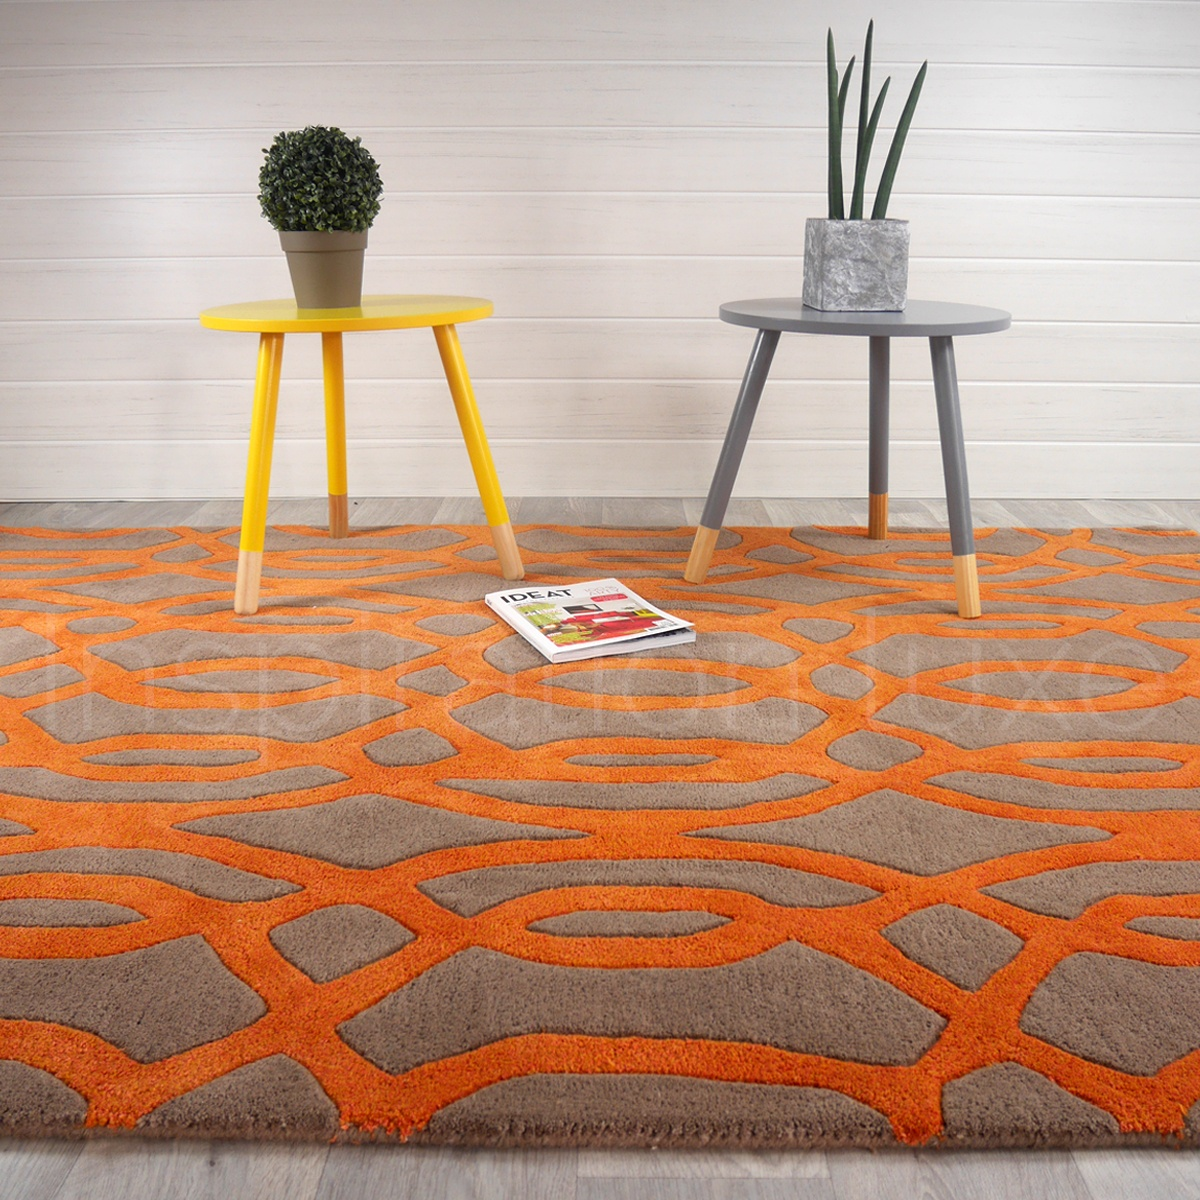 Carreaux ciment bricoman for Tapis de salon gris et beige